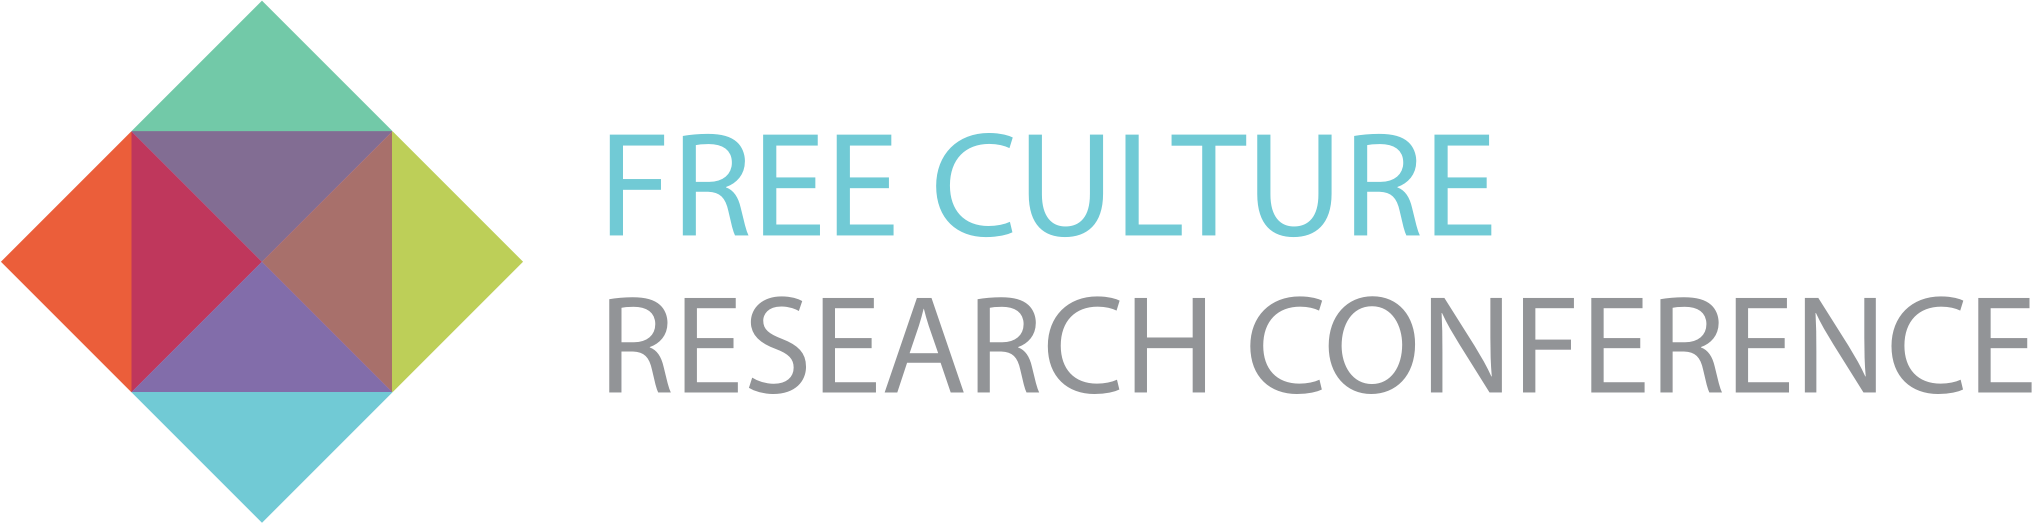 Free culture research logo. Conference clipart medical conference